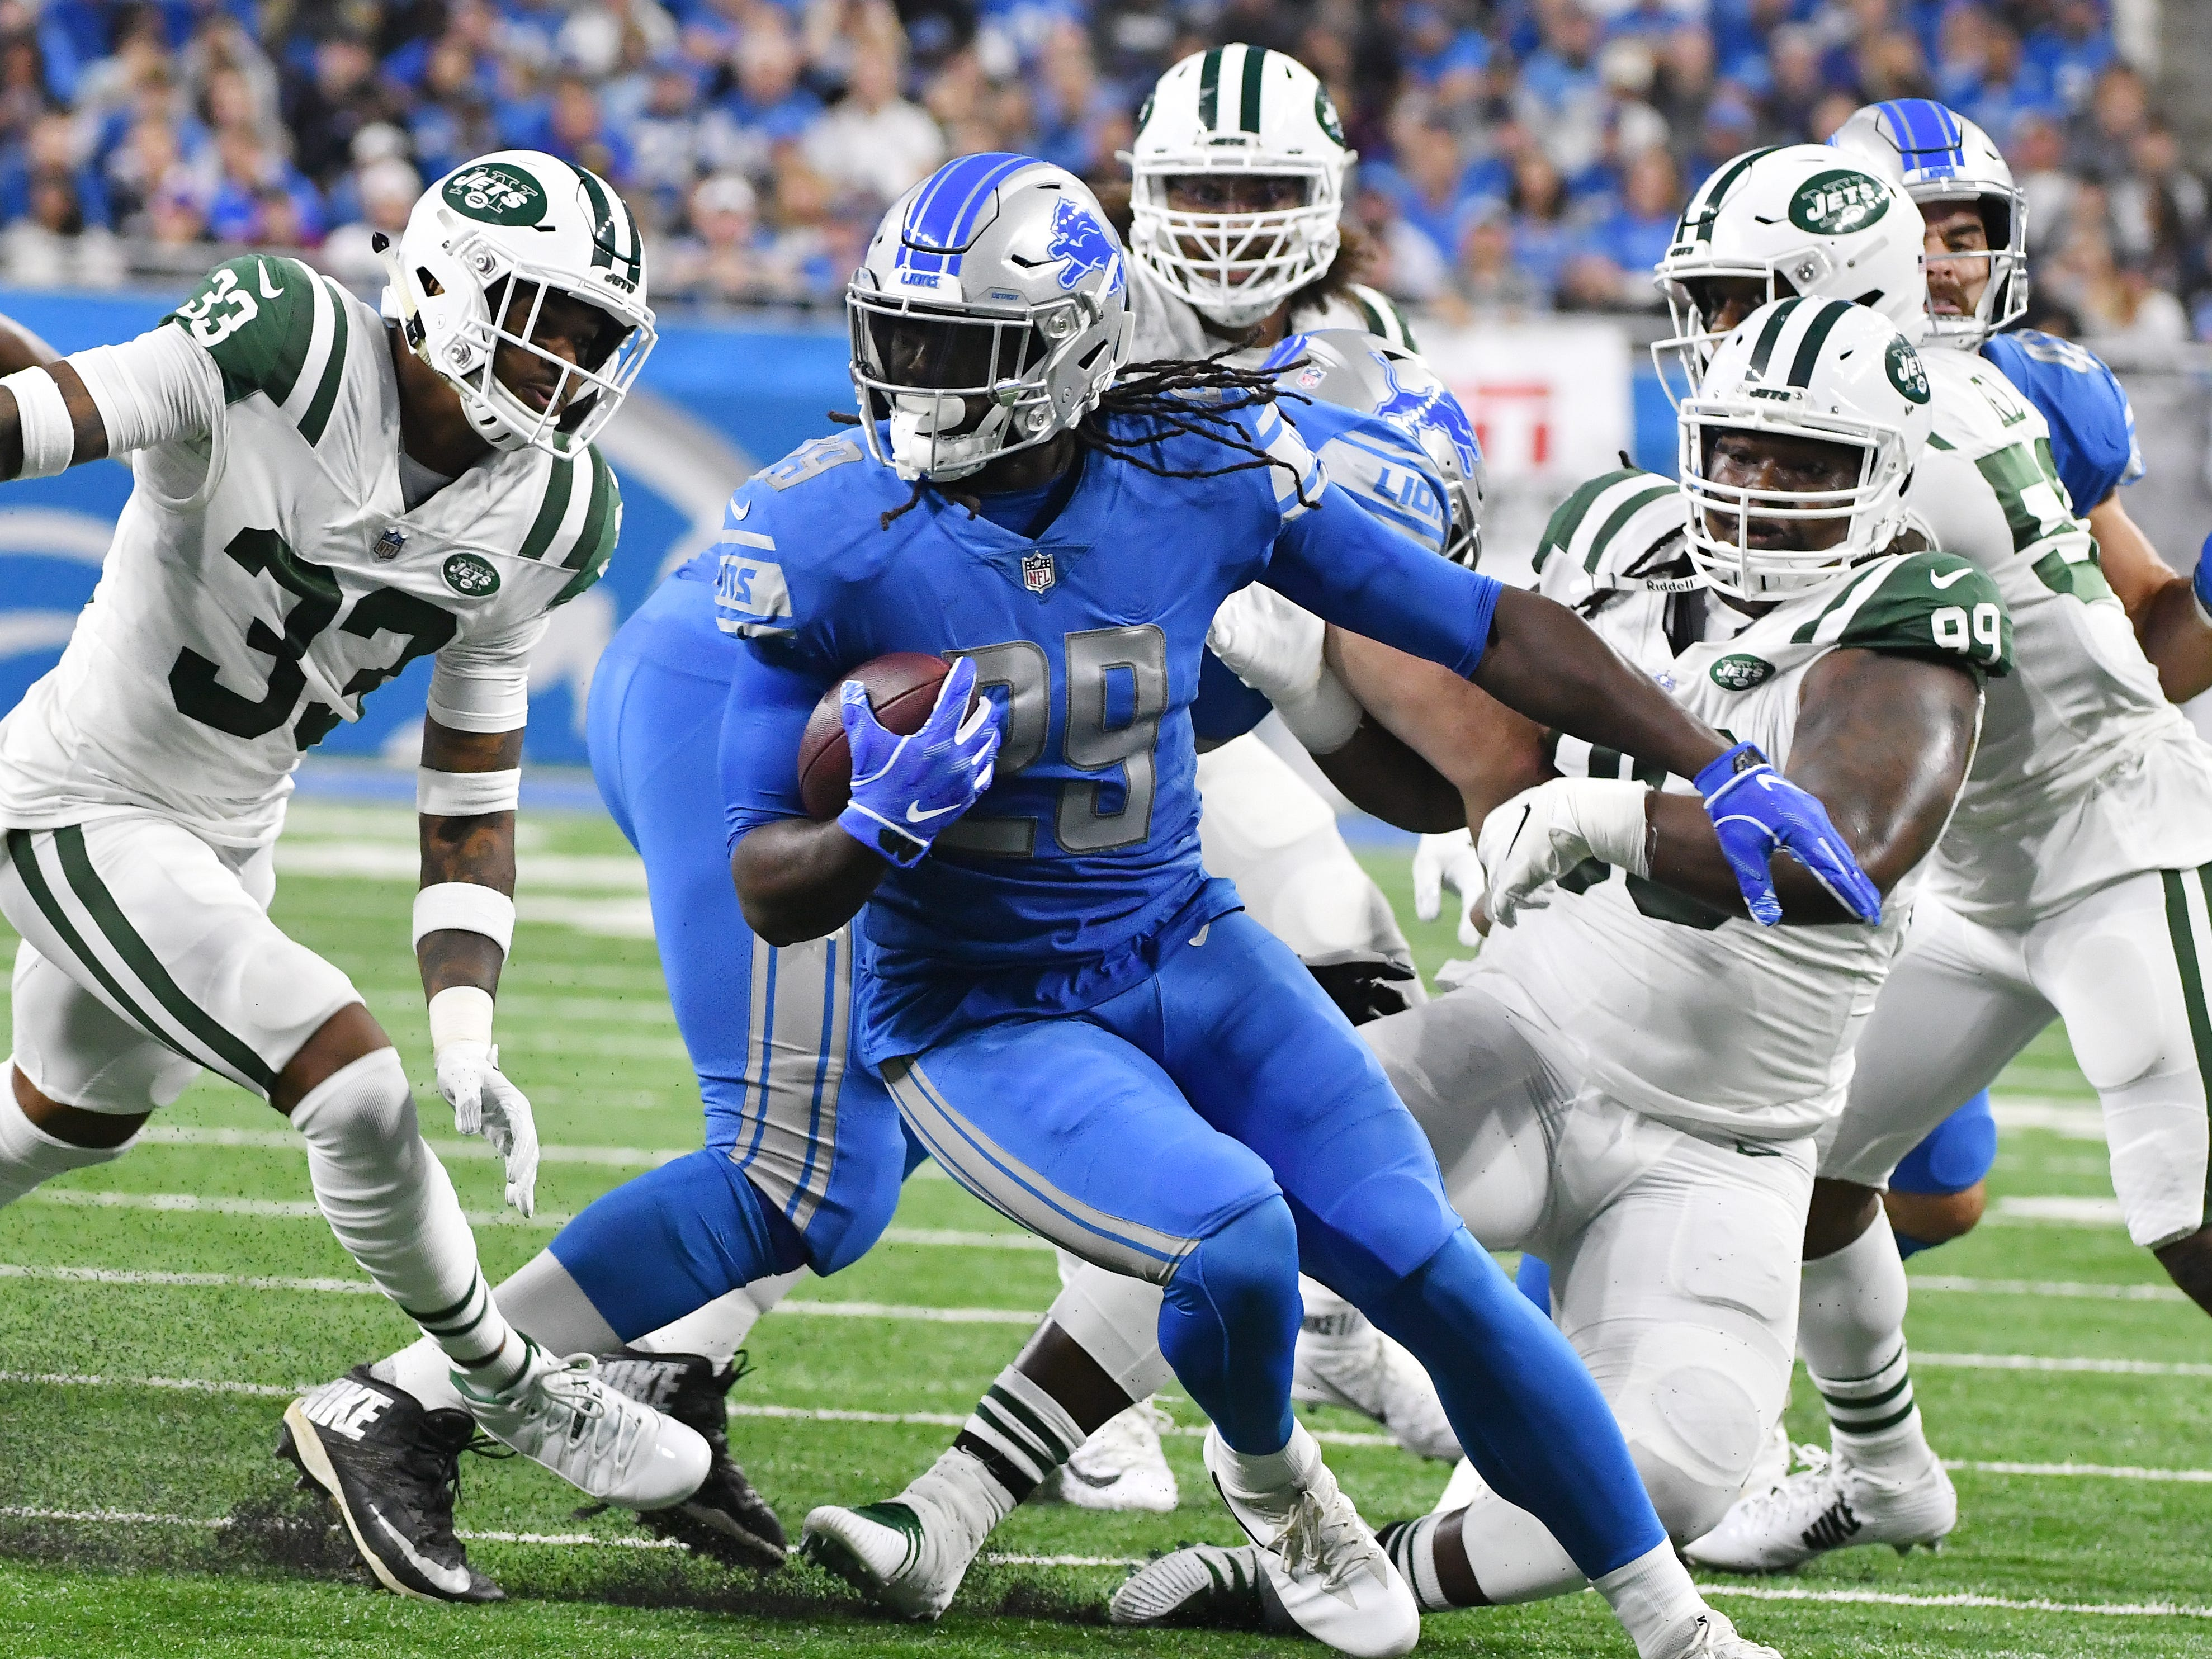 Lions running back LeGarrette Blount runs the ball in the first quarter.